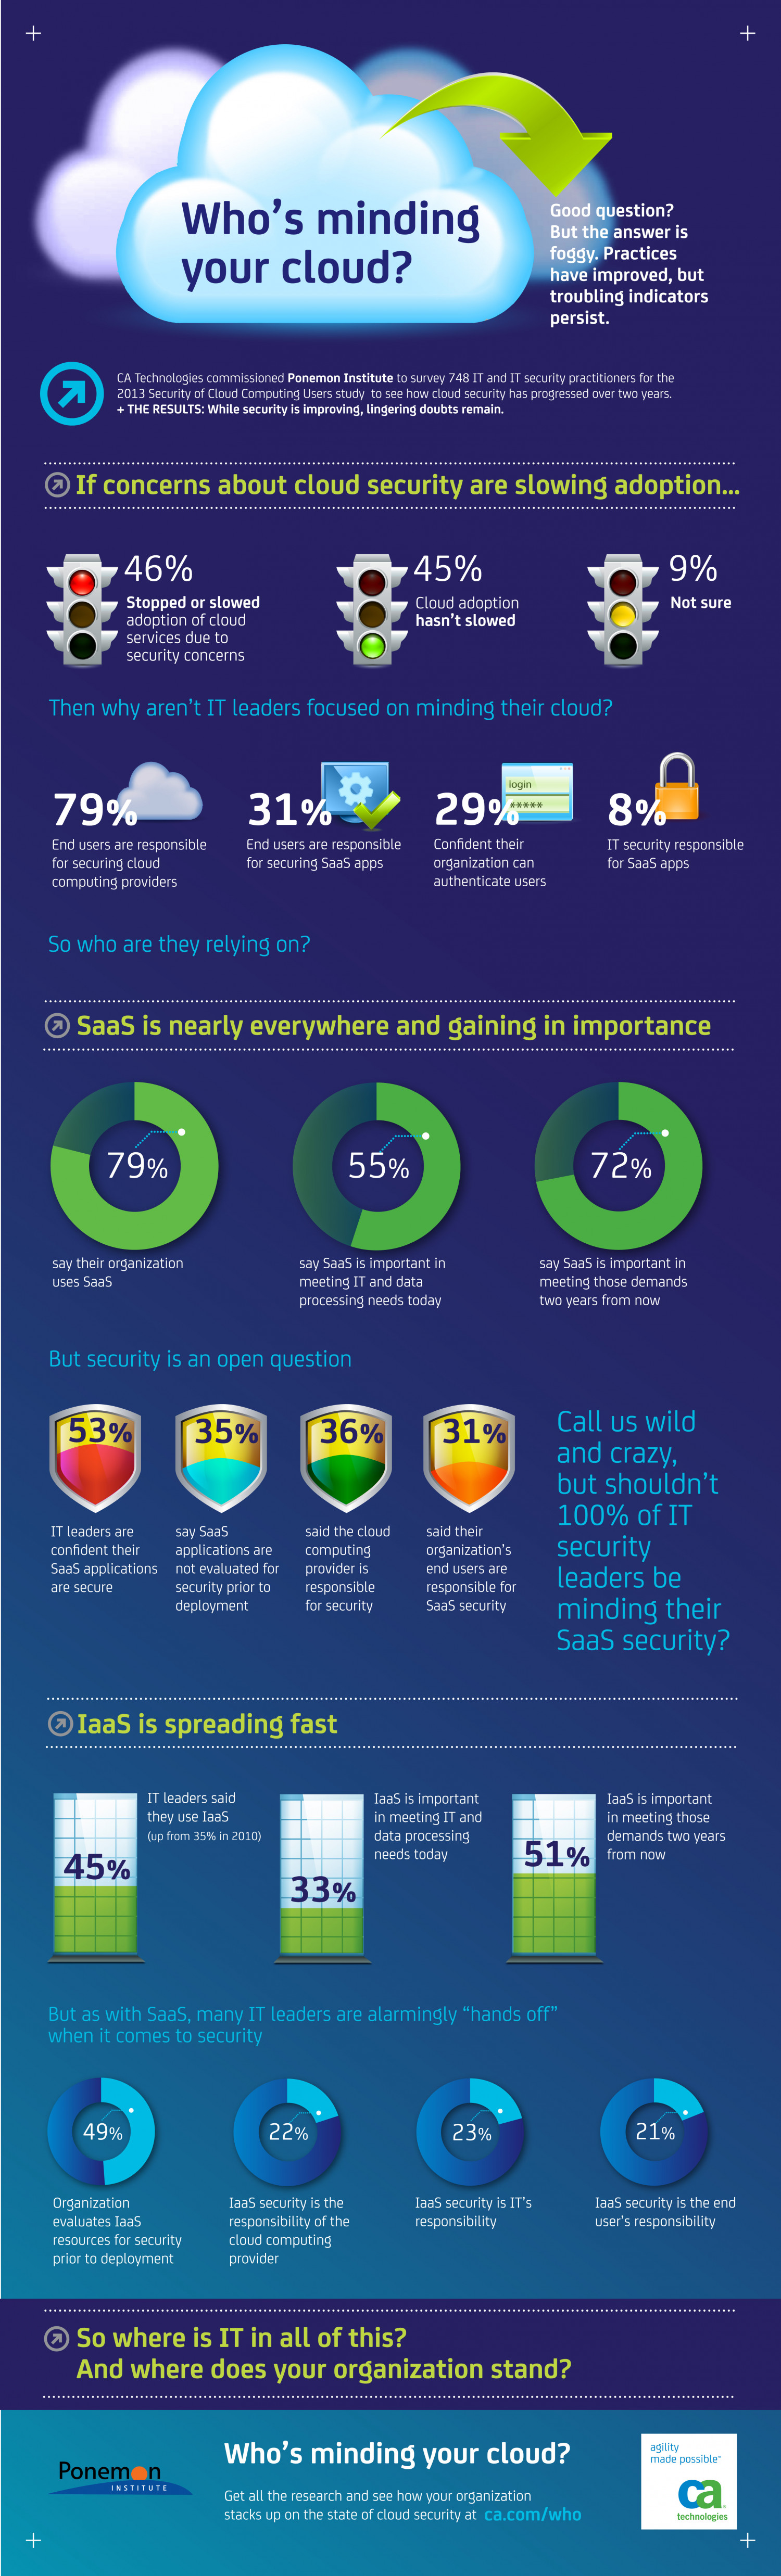 Who's Minding Your Cloud? Infographic